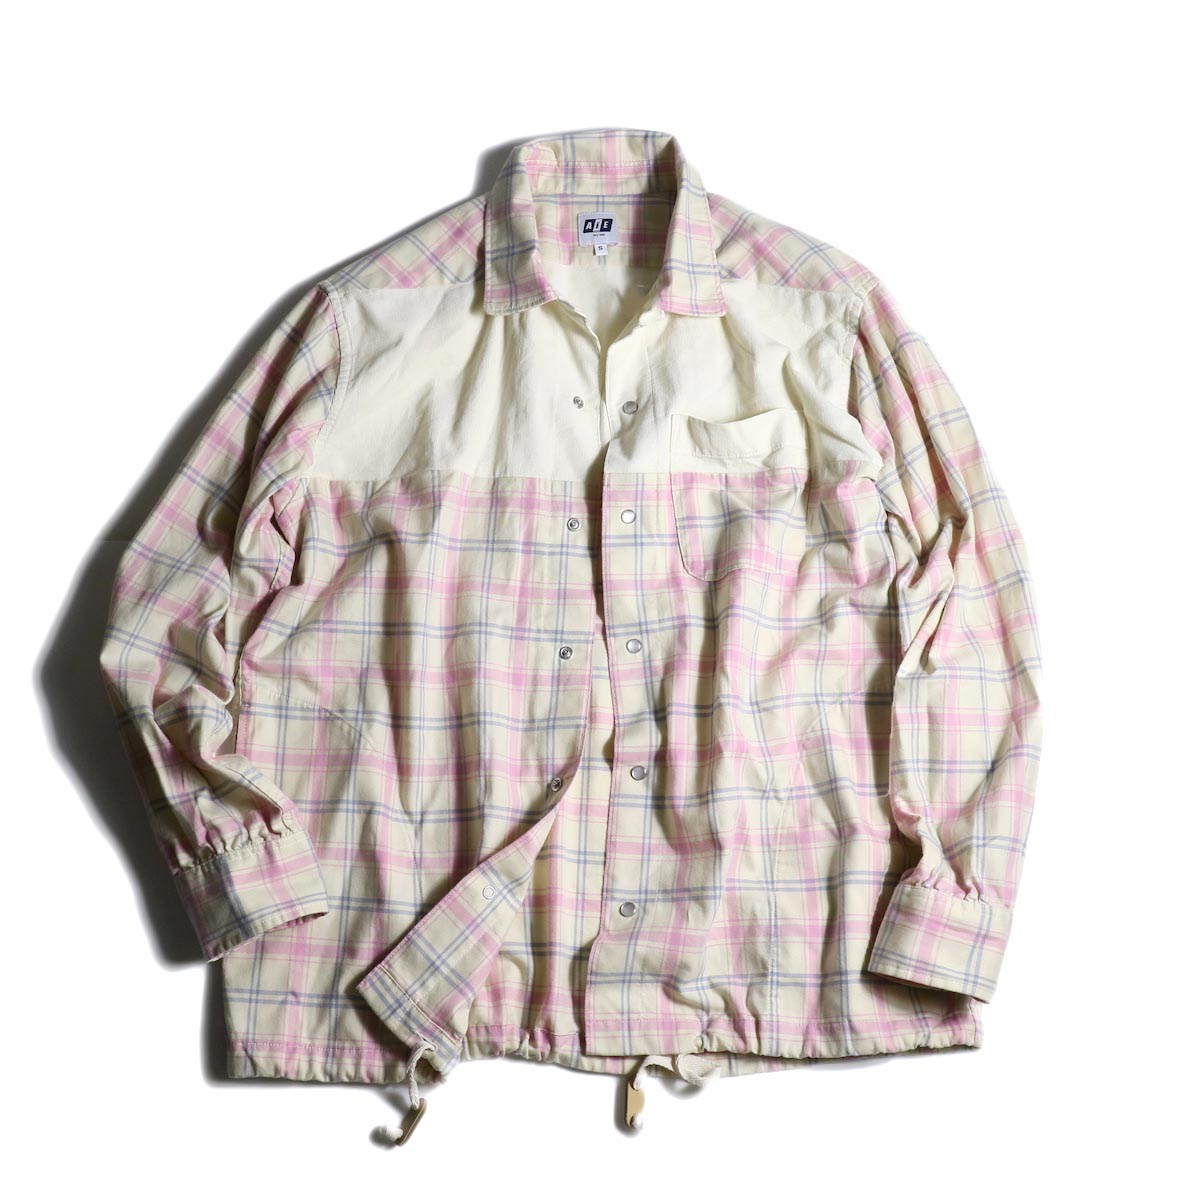 AiE / Coach Shirt -Cotton Plaid 正面